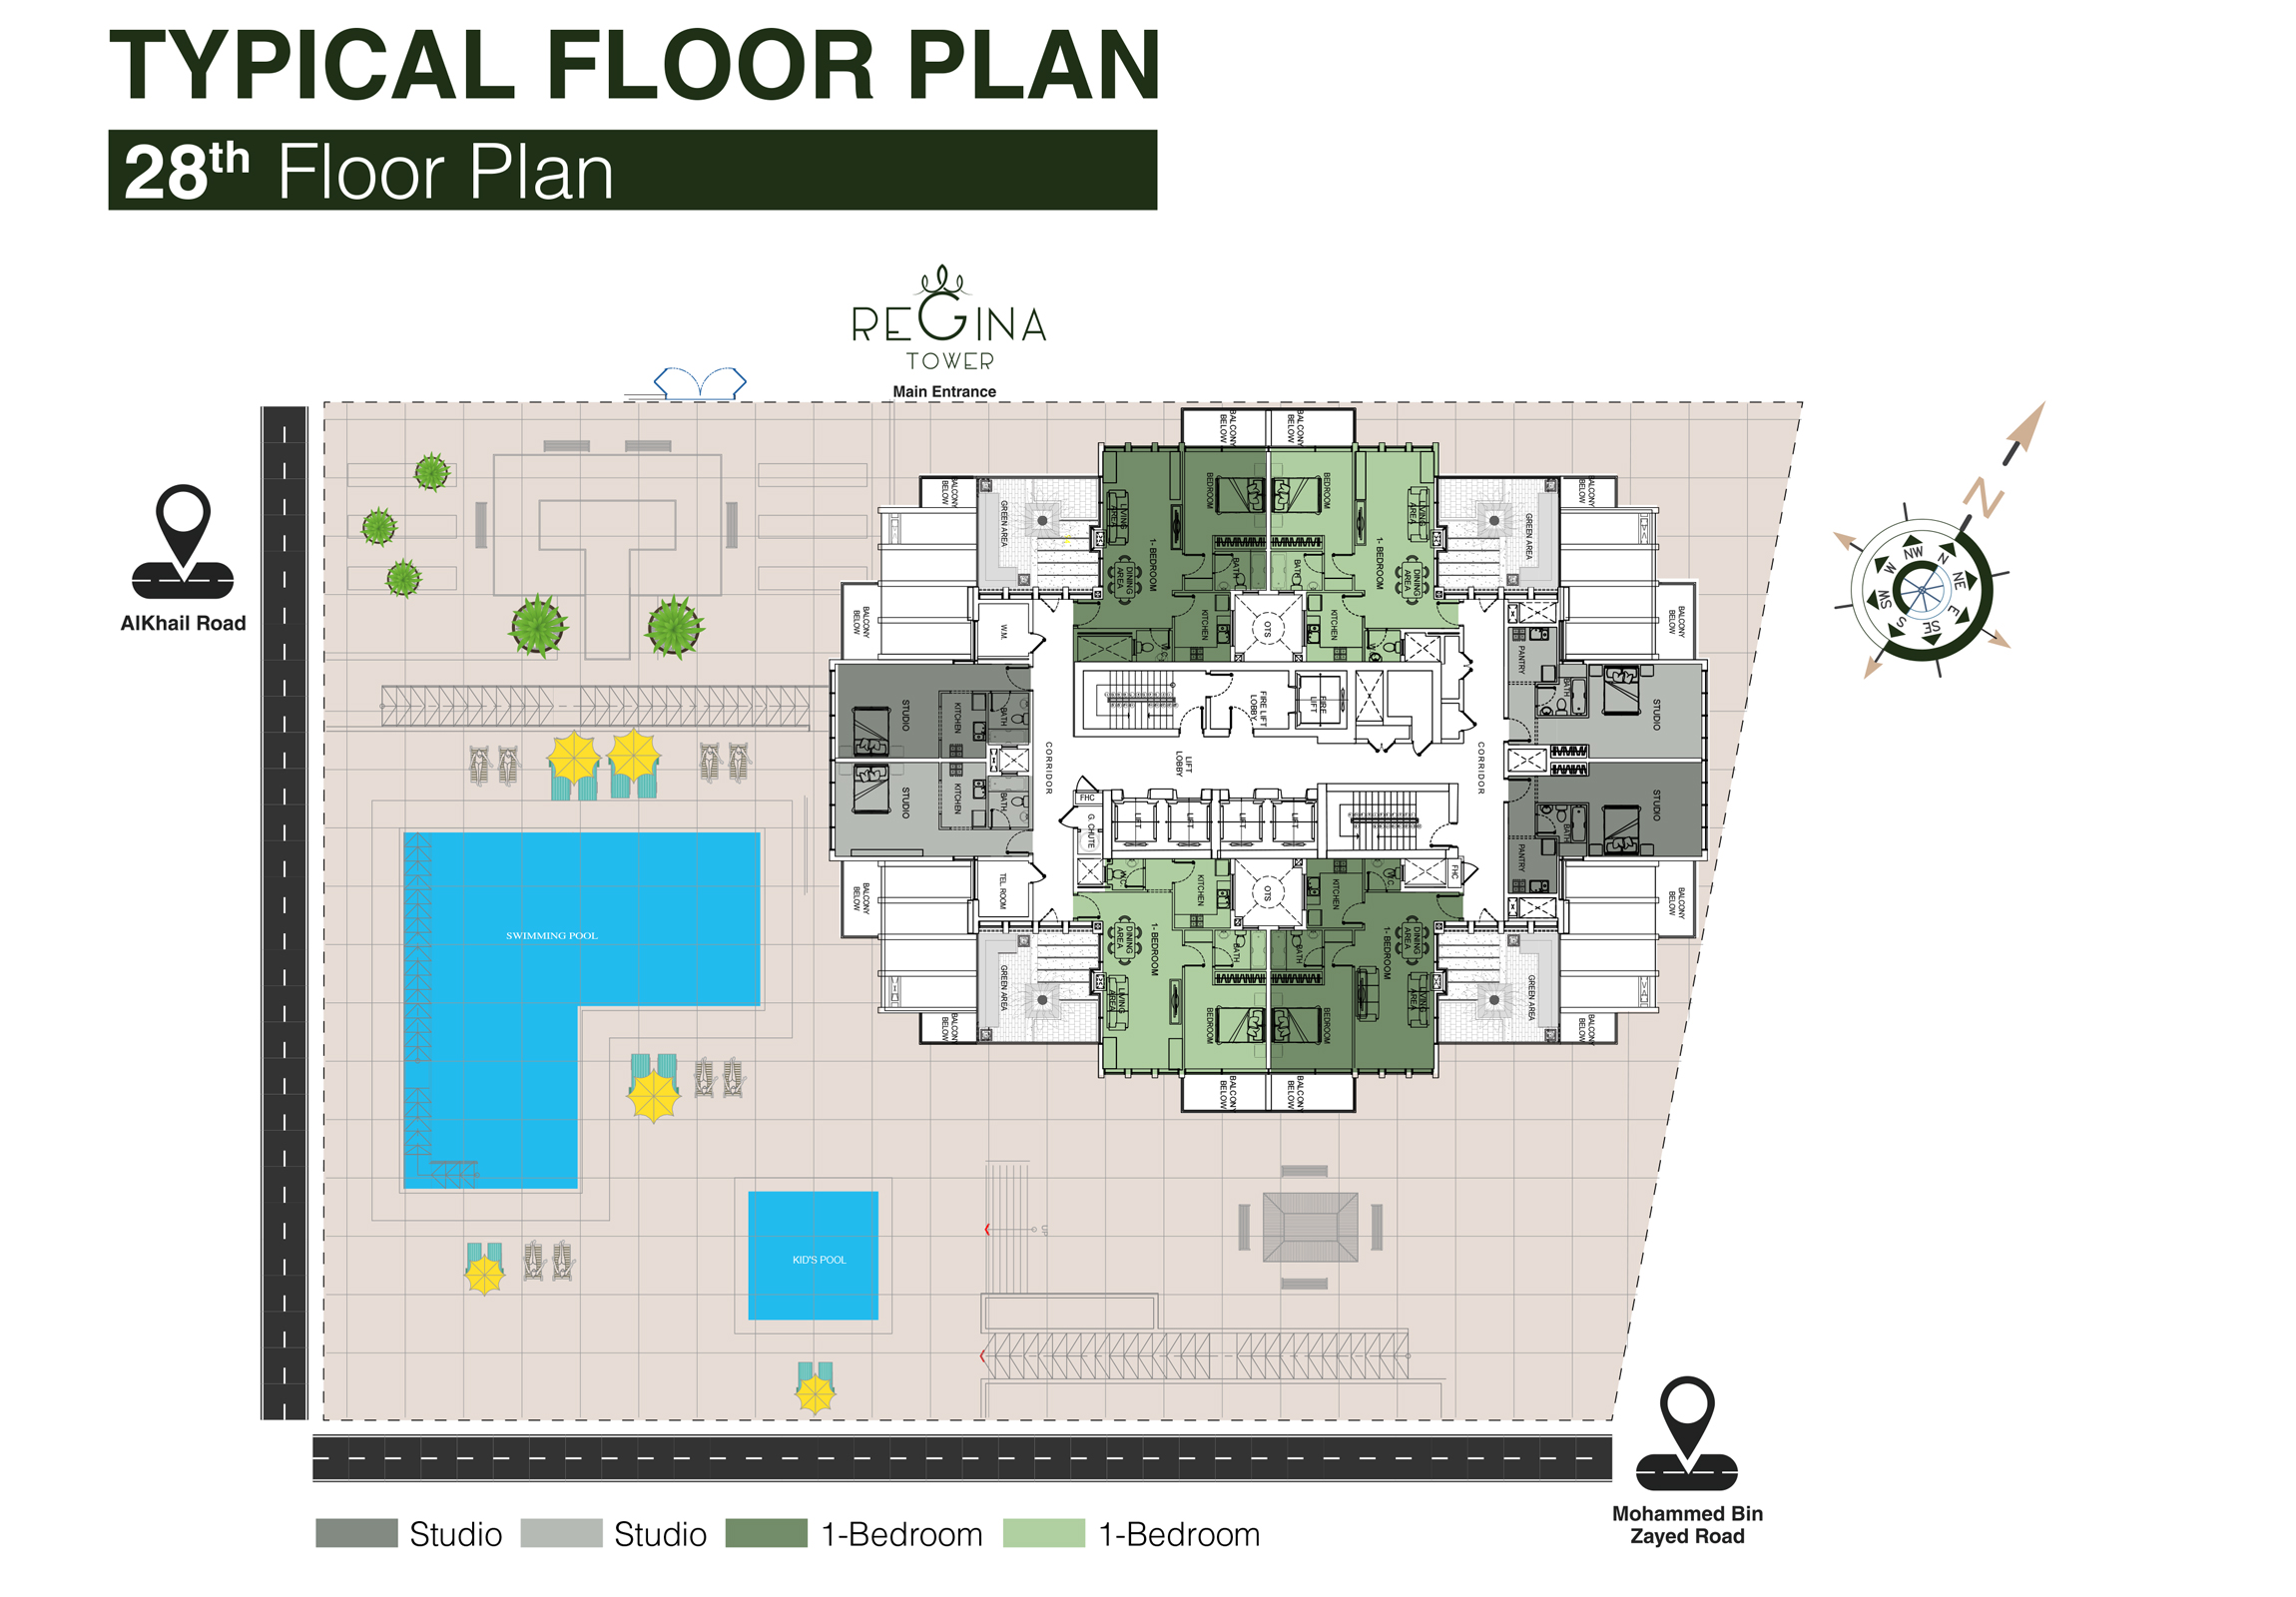 Typical Floor Plan 28th Floor